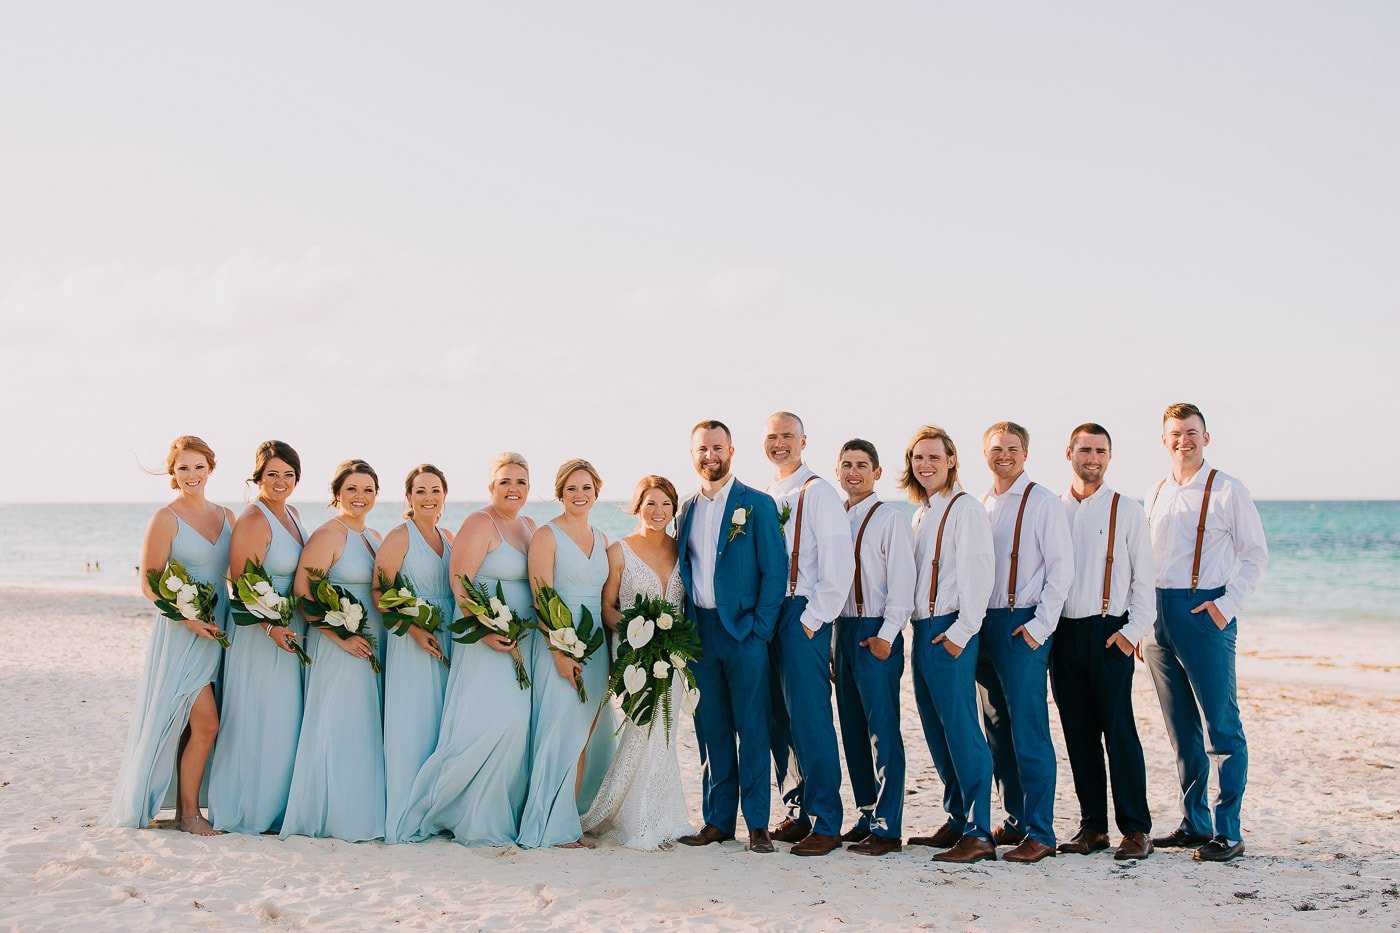 How to Choose the Perfect Bridesmaid's Dresses for a Beach Wedding ...